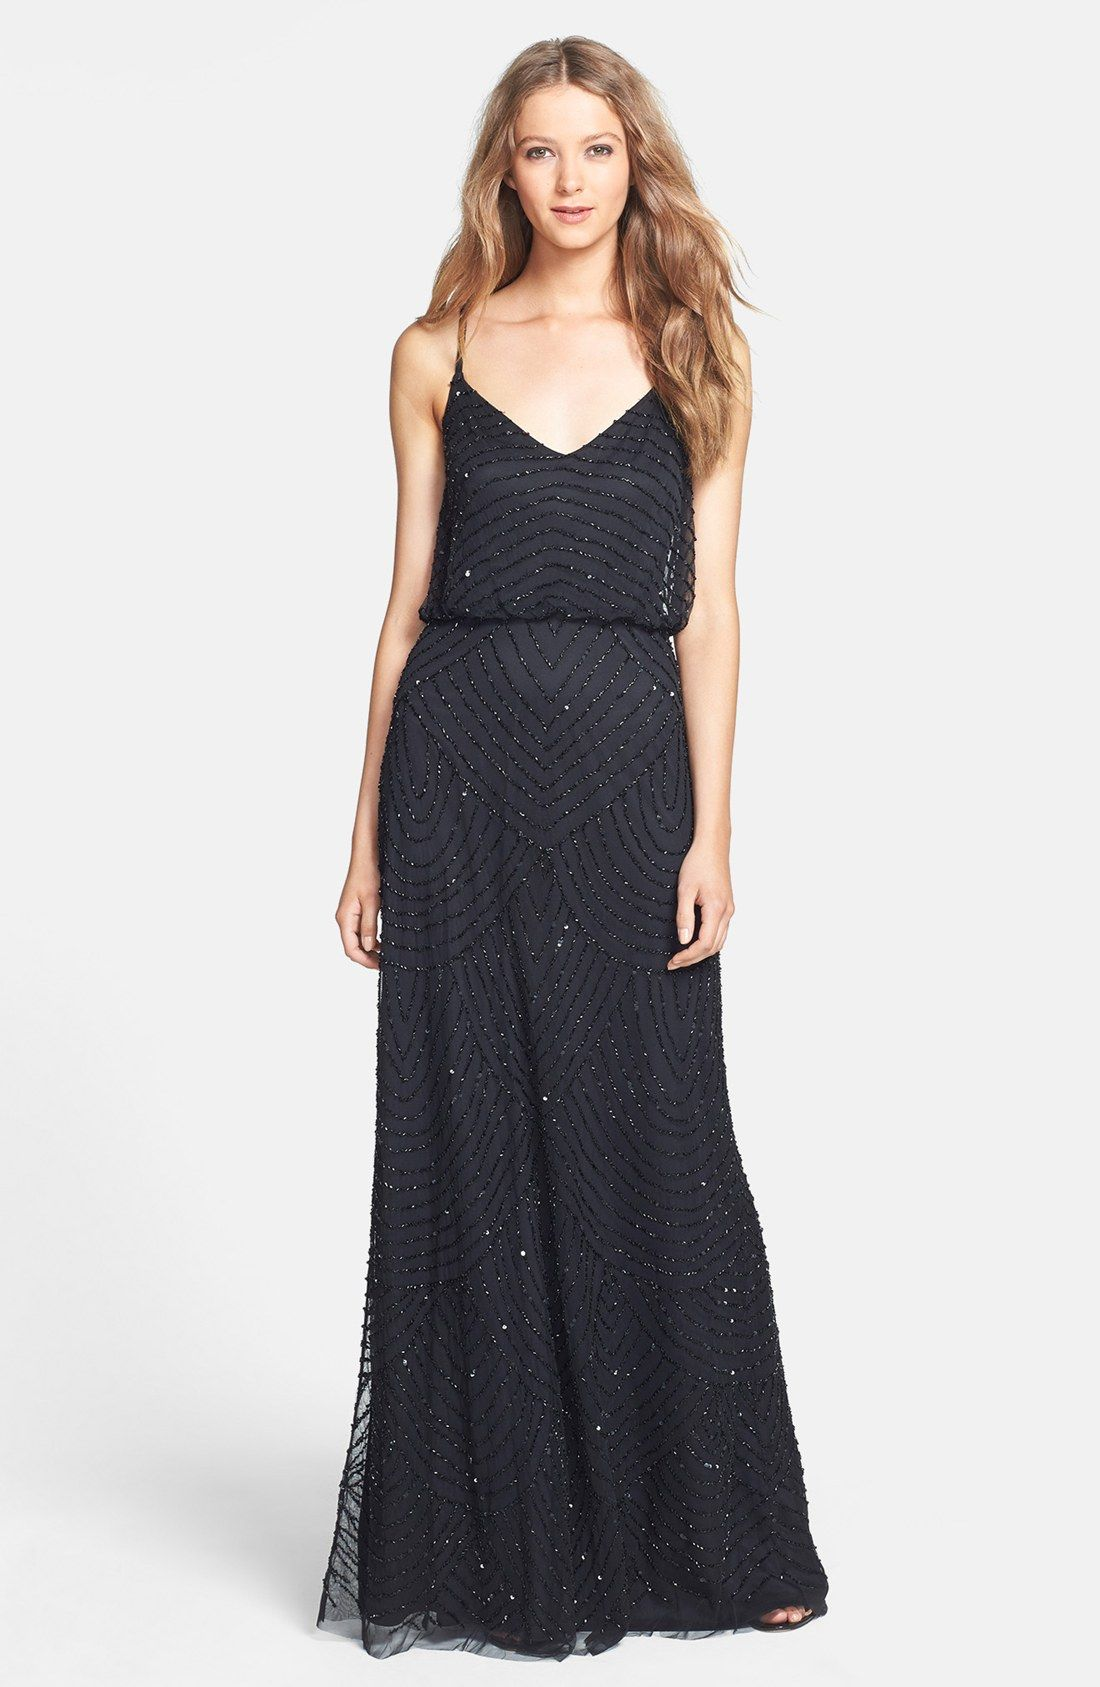 Adrianna Papell Embellished Blouson Gown Regular Petite